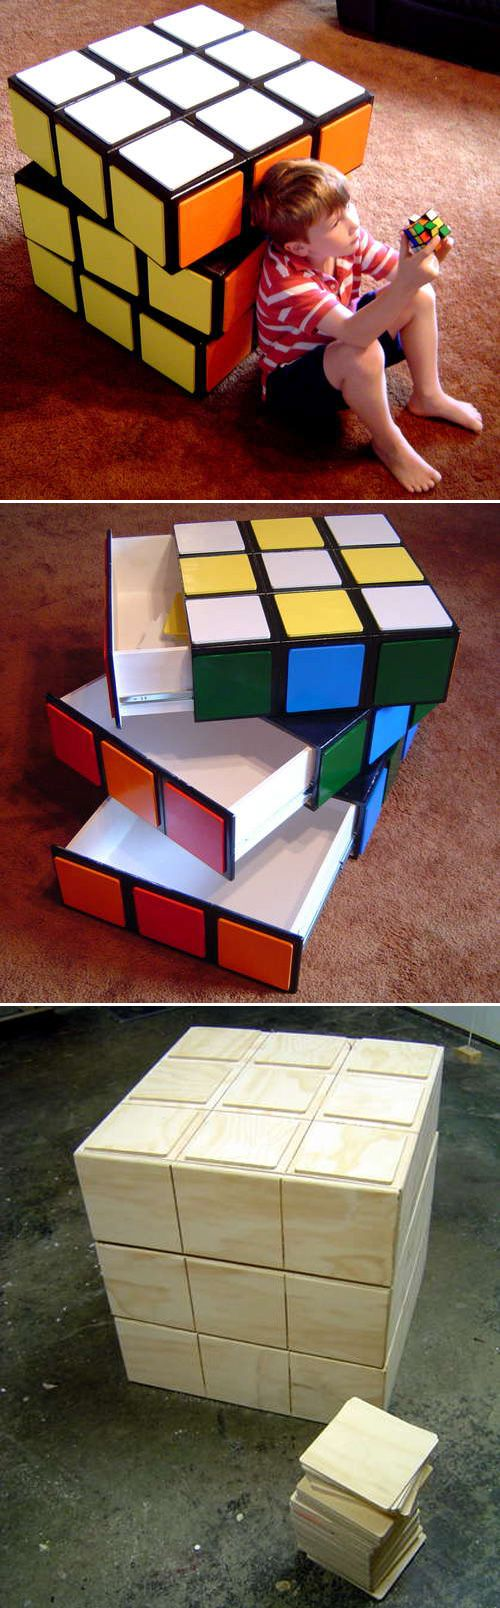 Awesome game room storage bin! Cubo di Rubik porta giochi